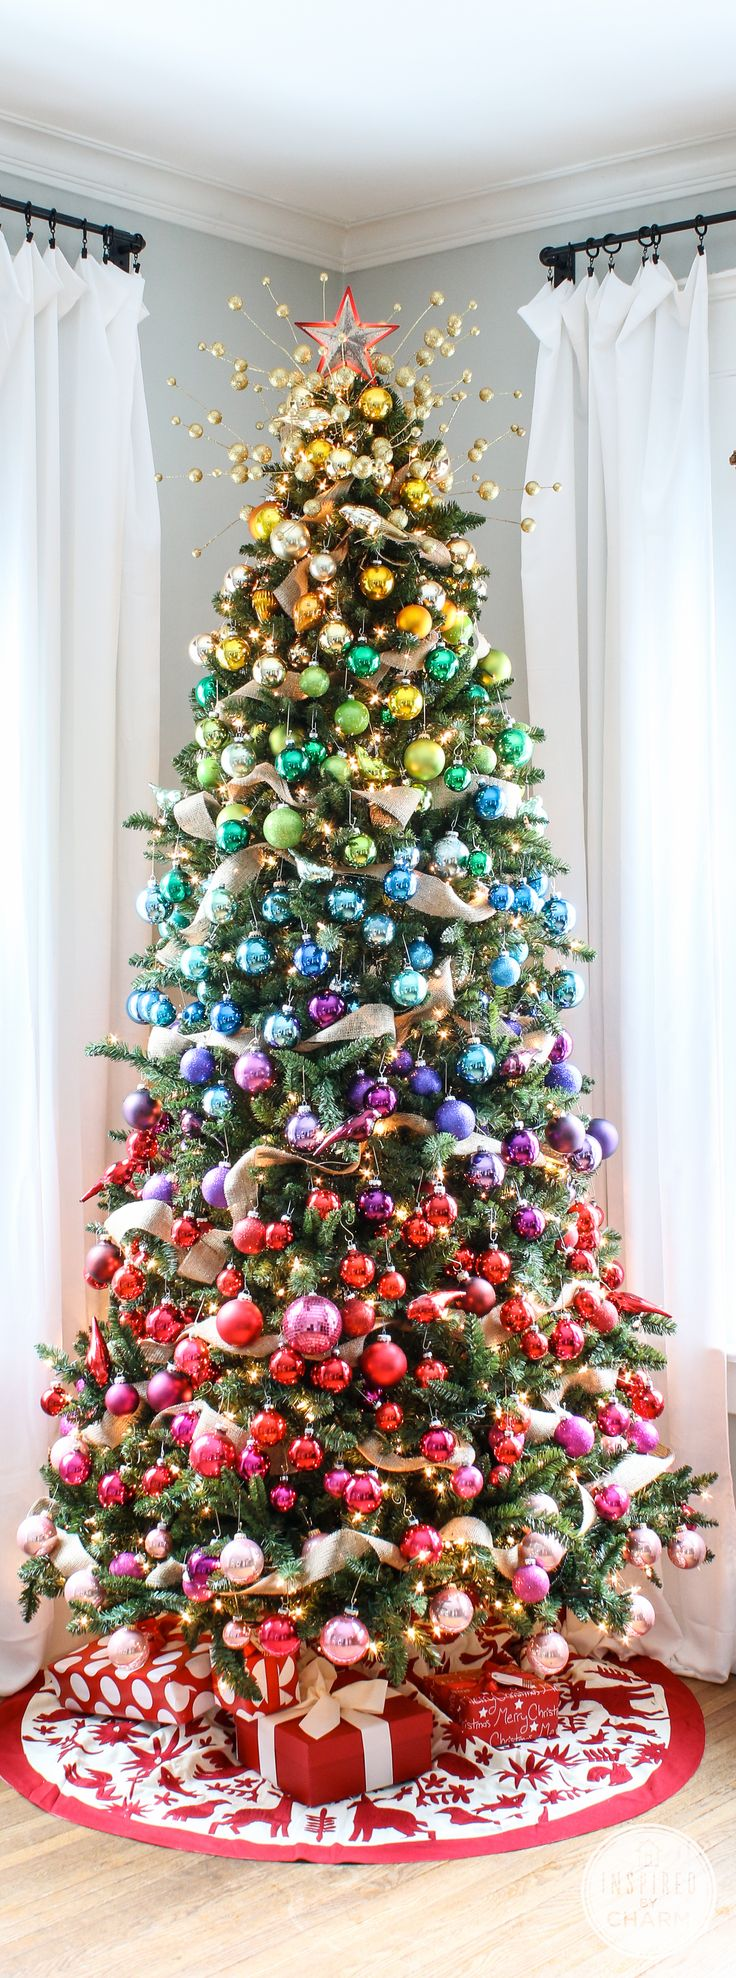 A Colorful Christmas Tree via @inspiredbycharm #gradient #christmas #tree